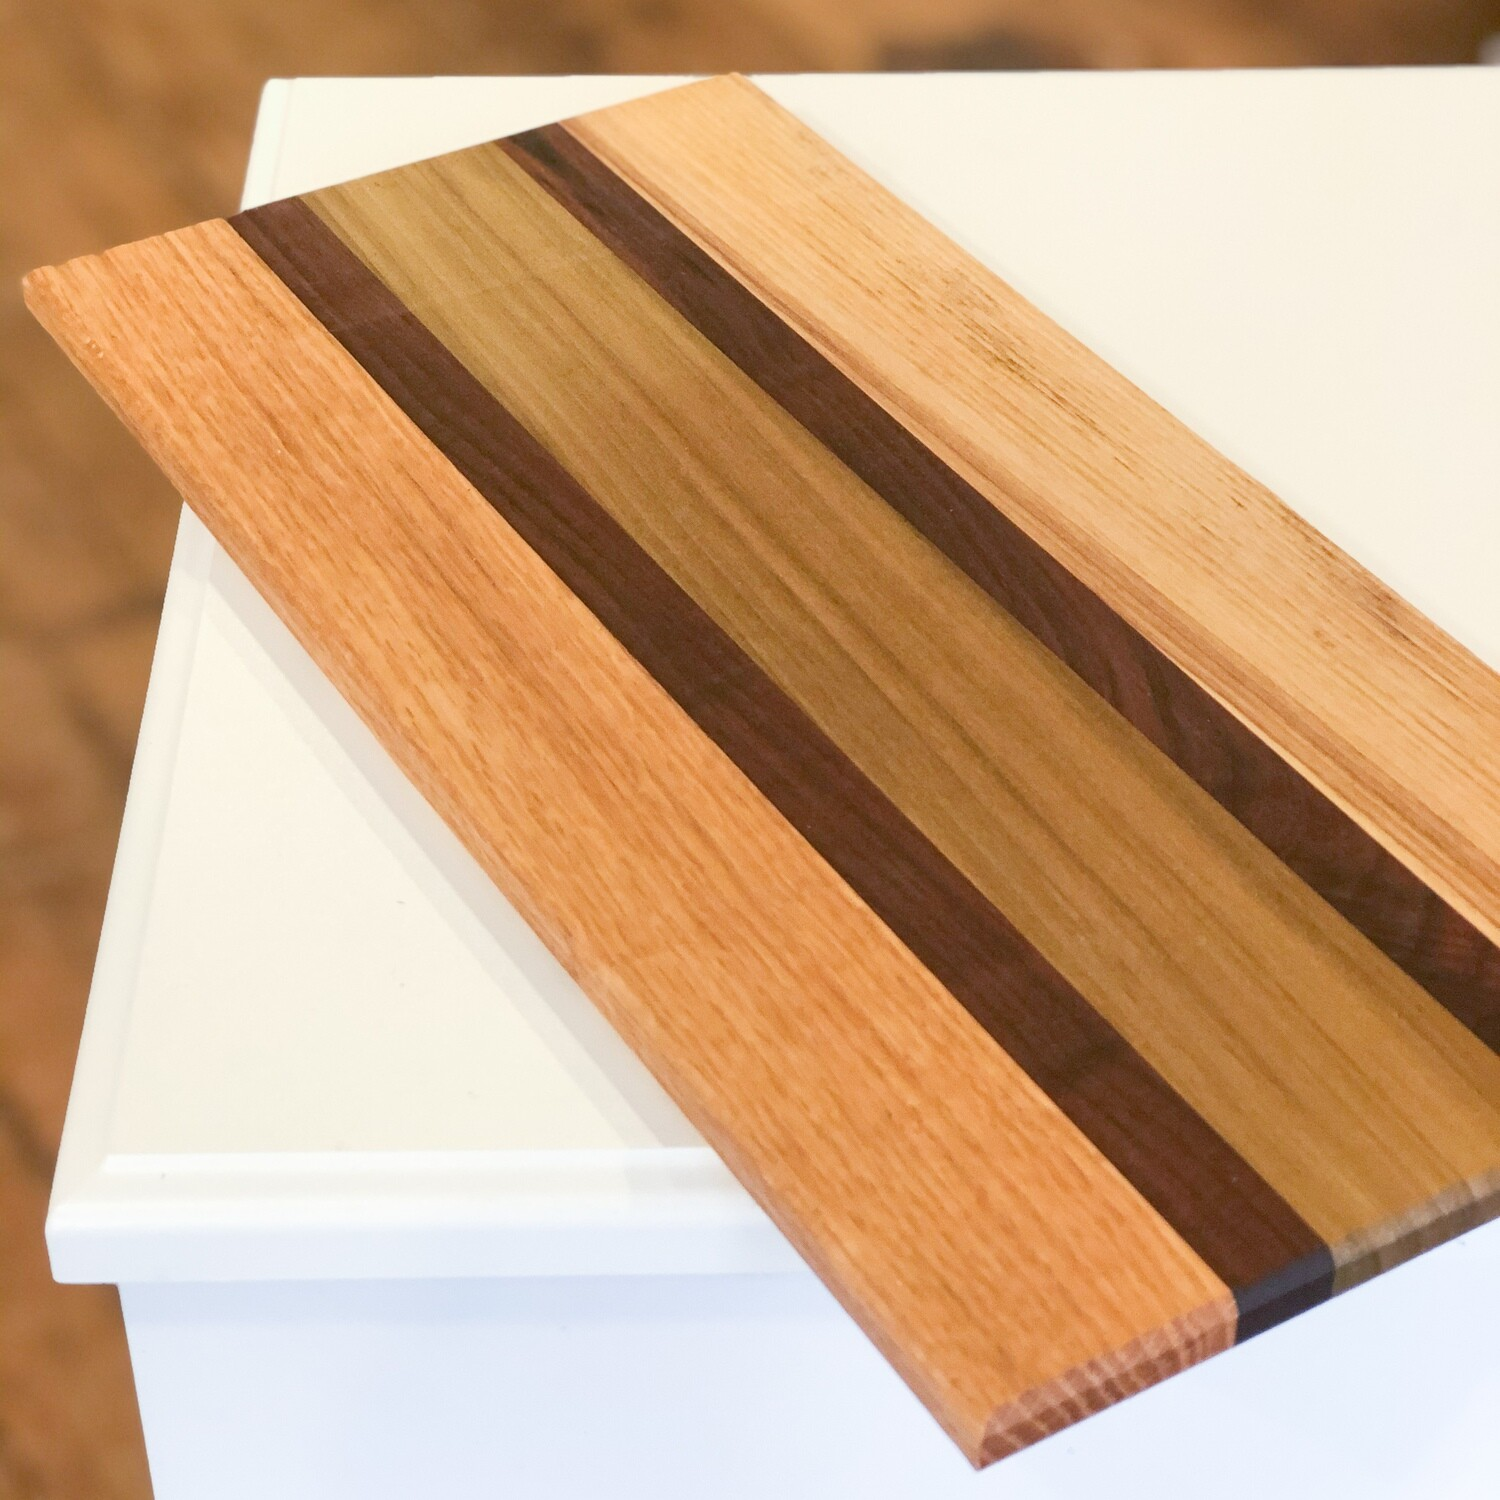 Crhs-105 Cutting Board Wood Medium Thickness Up To 7X14